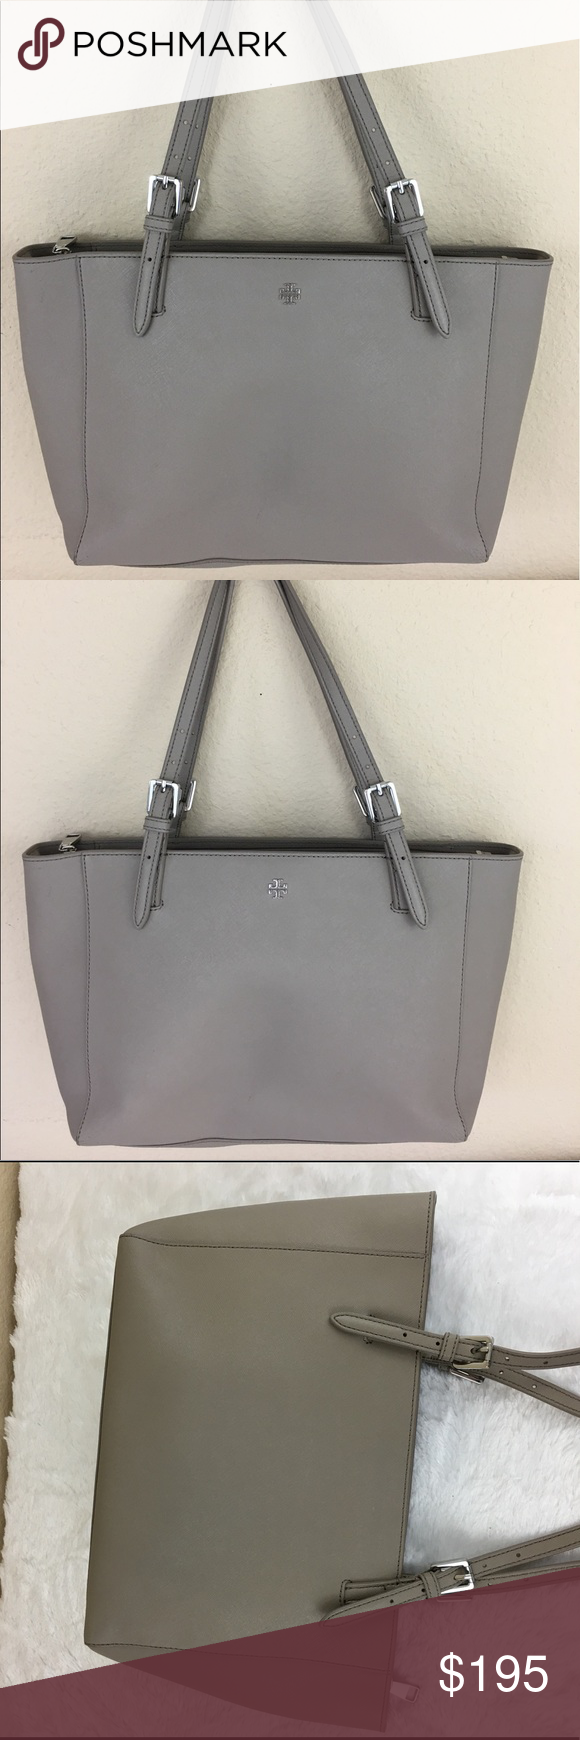 92924080f165 Tory Burch York Buckle small tote French gray Great condition Tory Burch  Bags